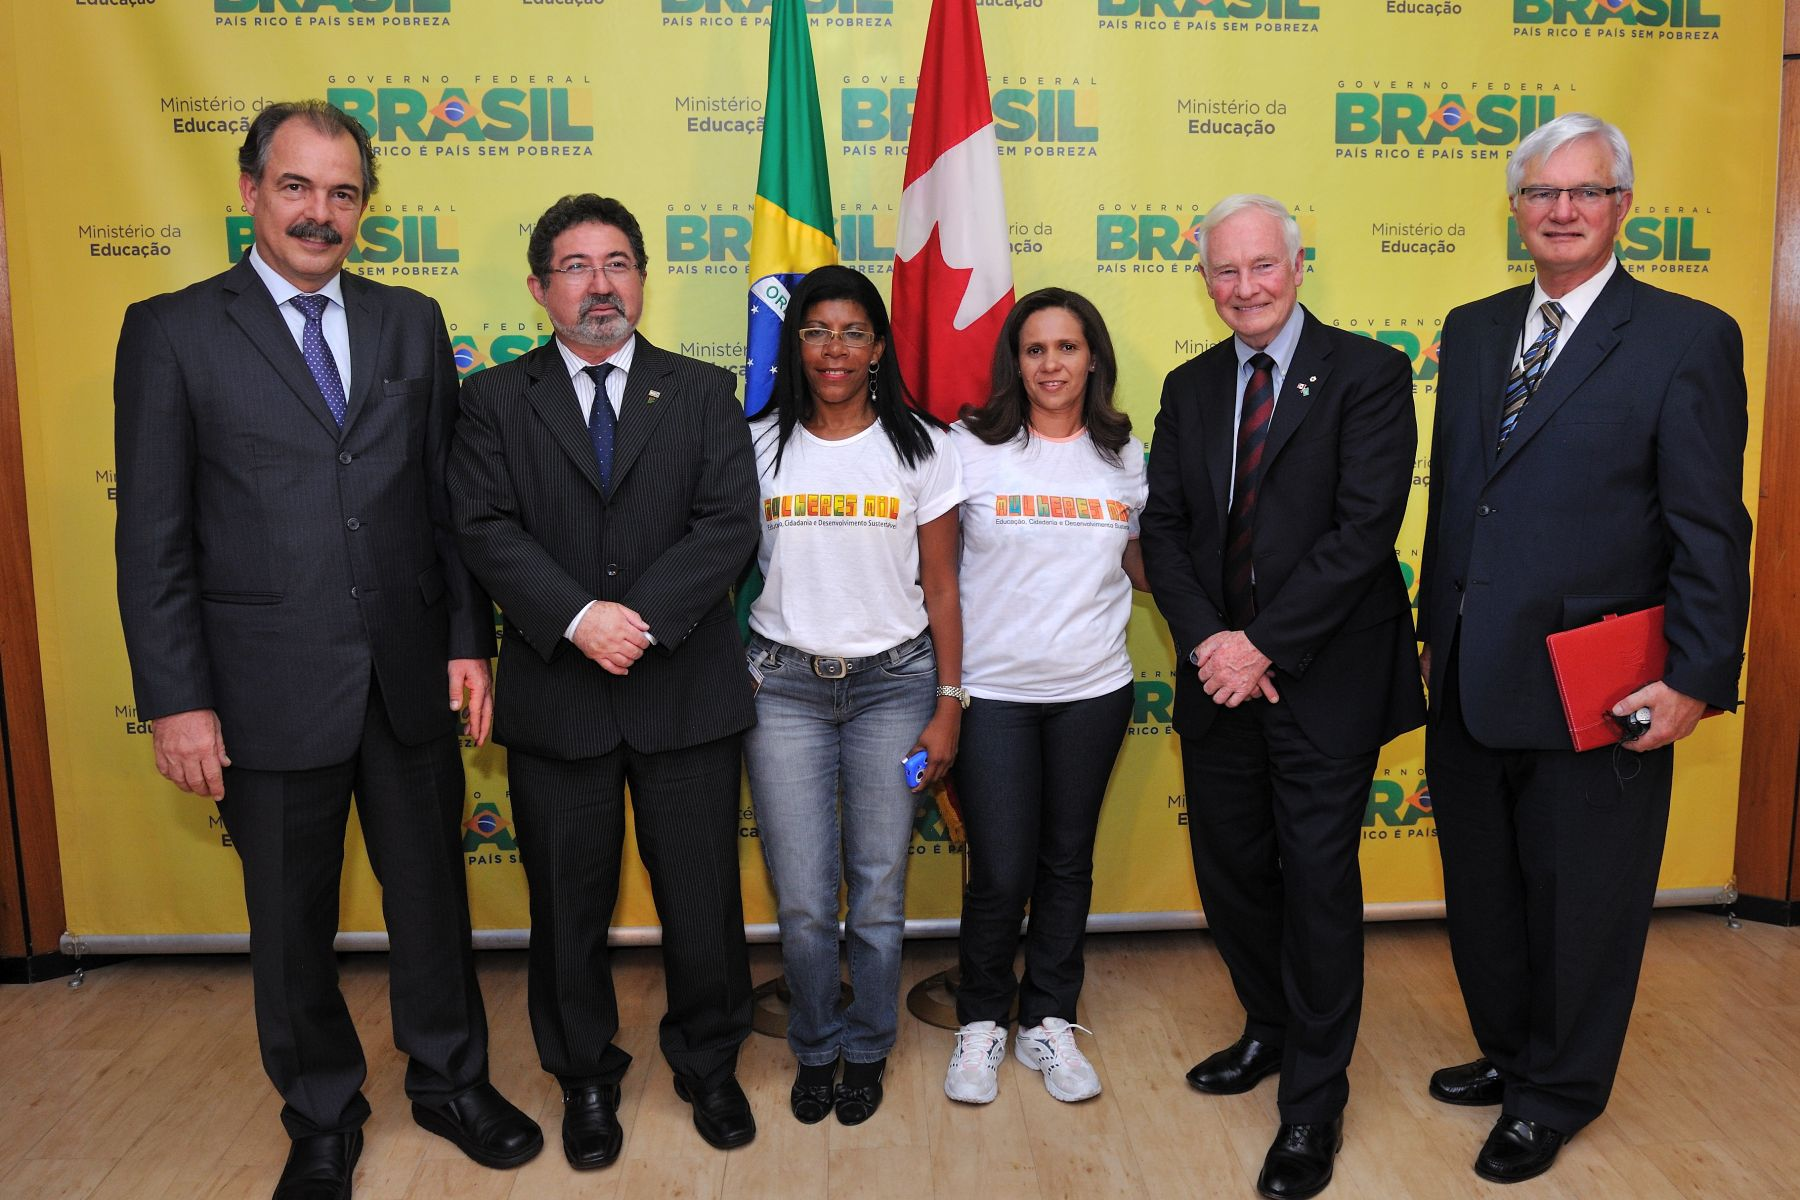 His Excellency and the Canadian delegation met with Brazilian women participating in the Mulheres Mil (1000 Women) Project. His Excellency Aloizio Mercadante, Minister of Education of Brazil (left) and James Knight, President of the Association of Canadian Community Colleges (right) participated in the meeting.